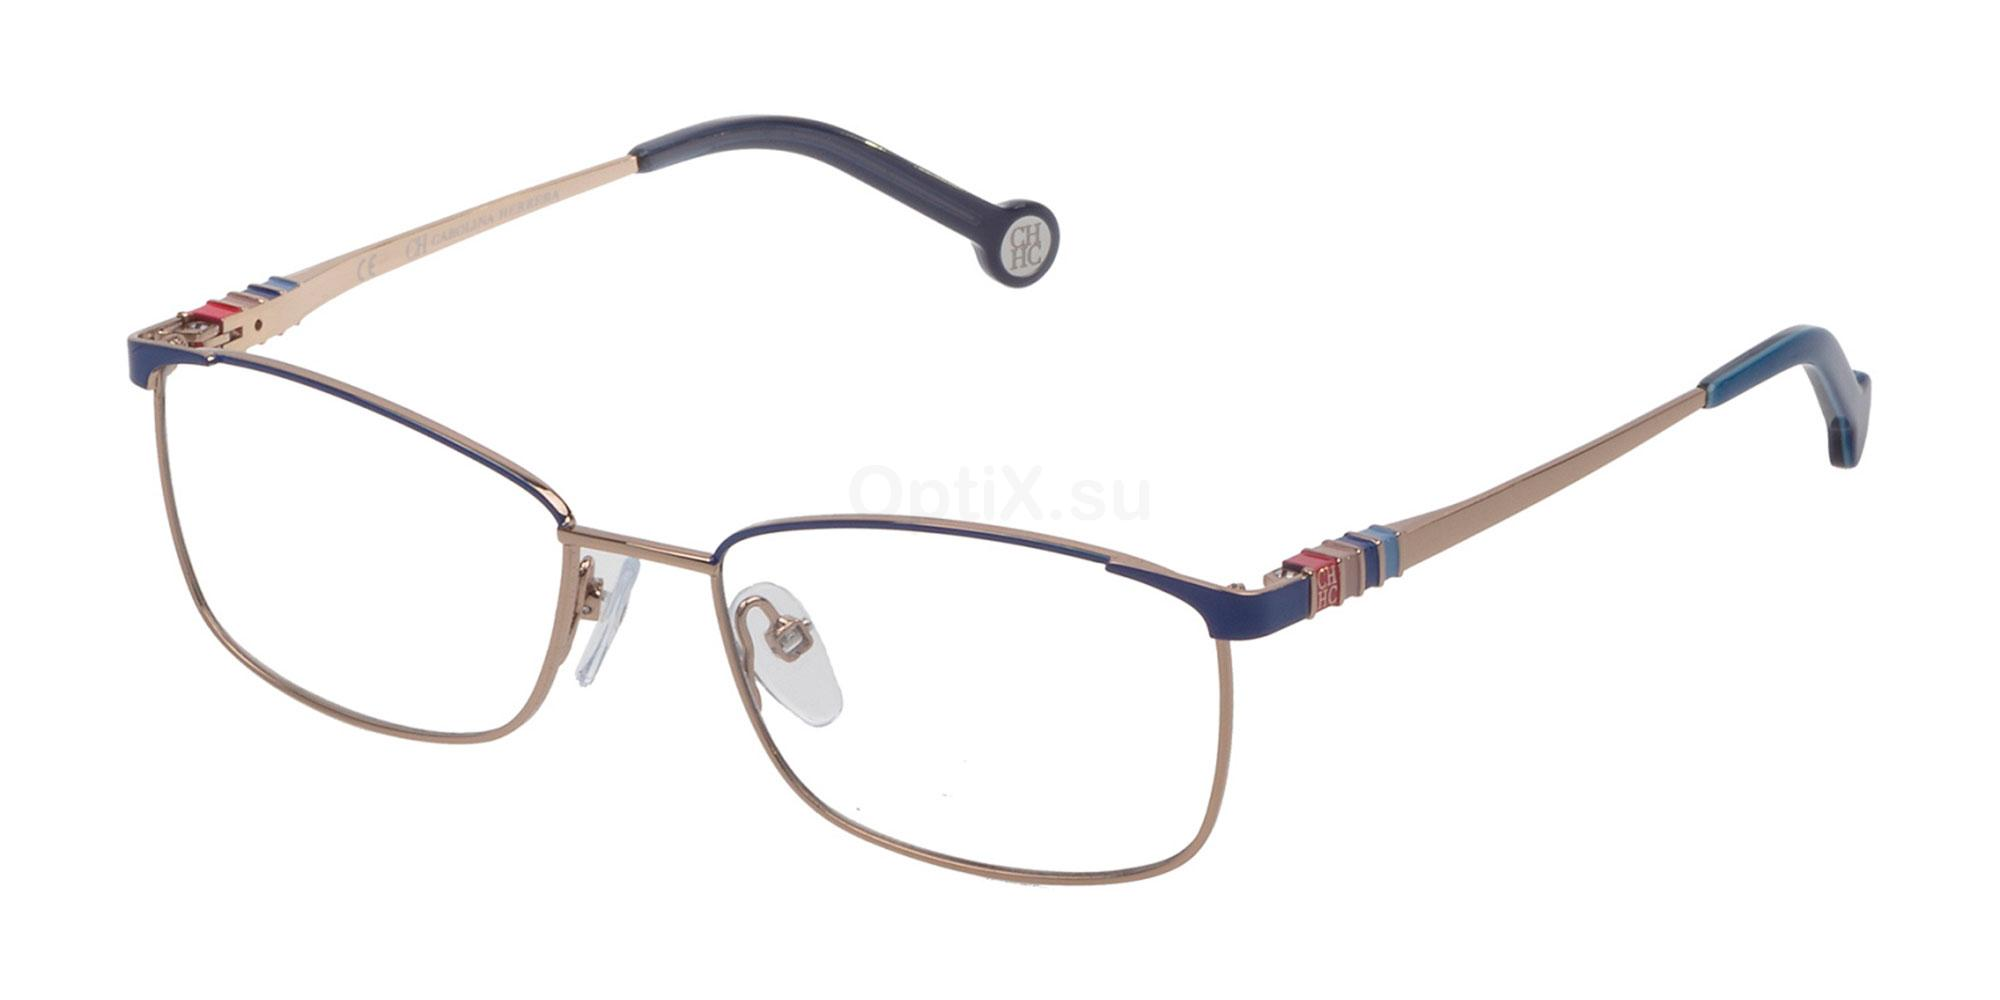 02A8 VHE114L Glasses, CH Carolina Herrera